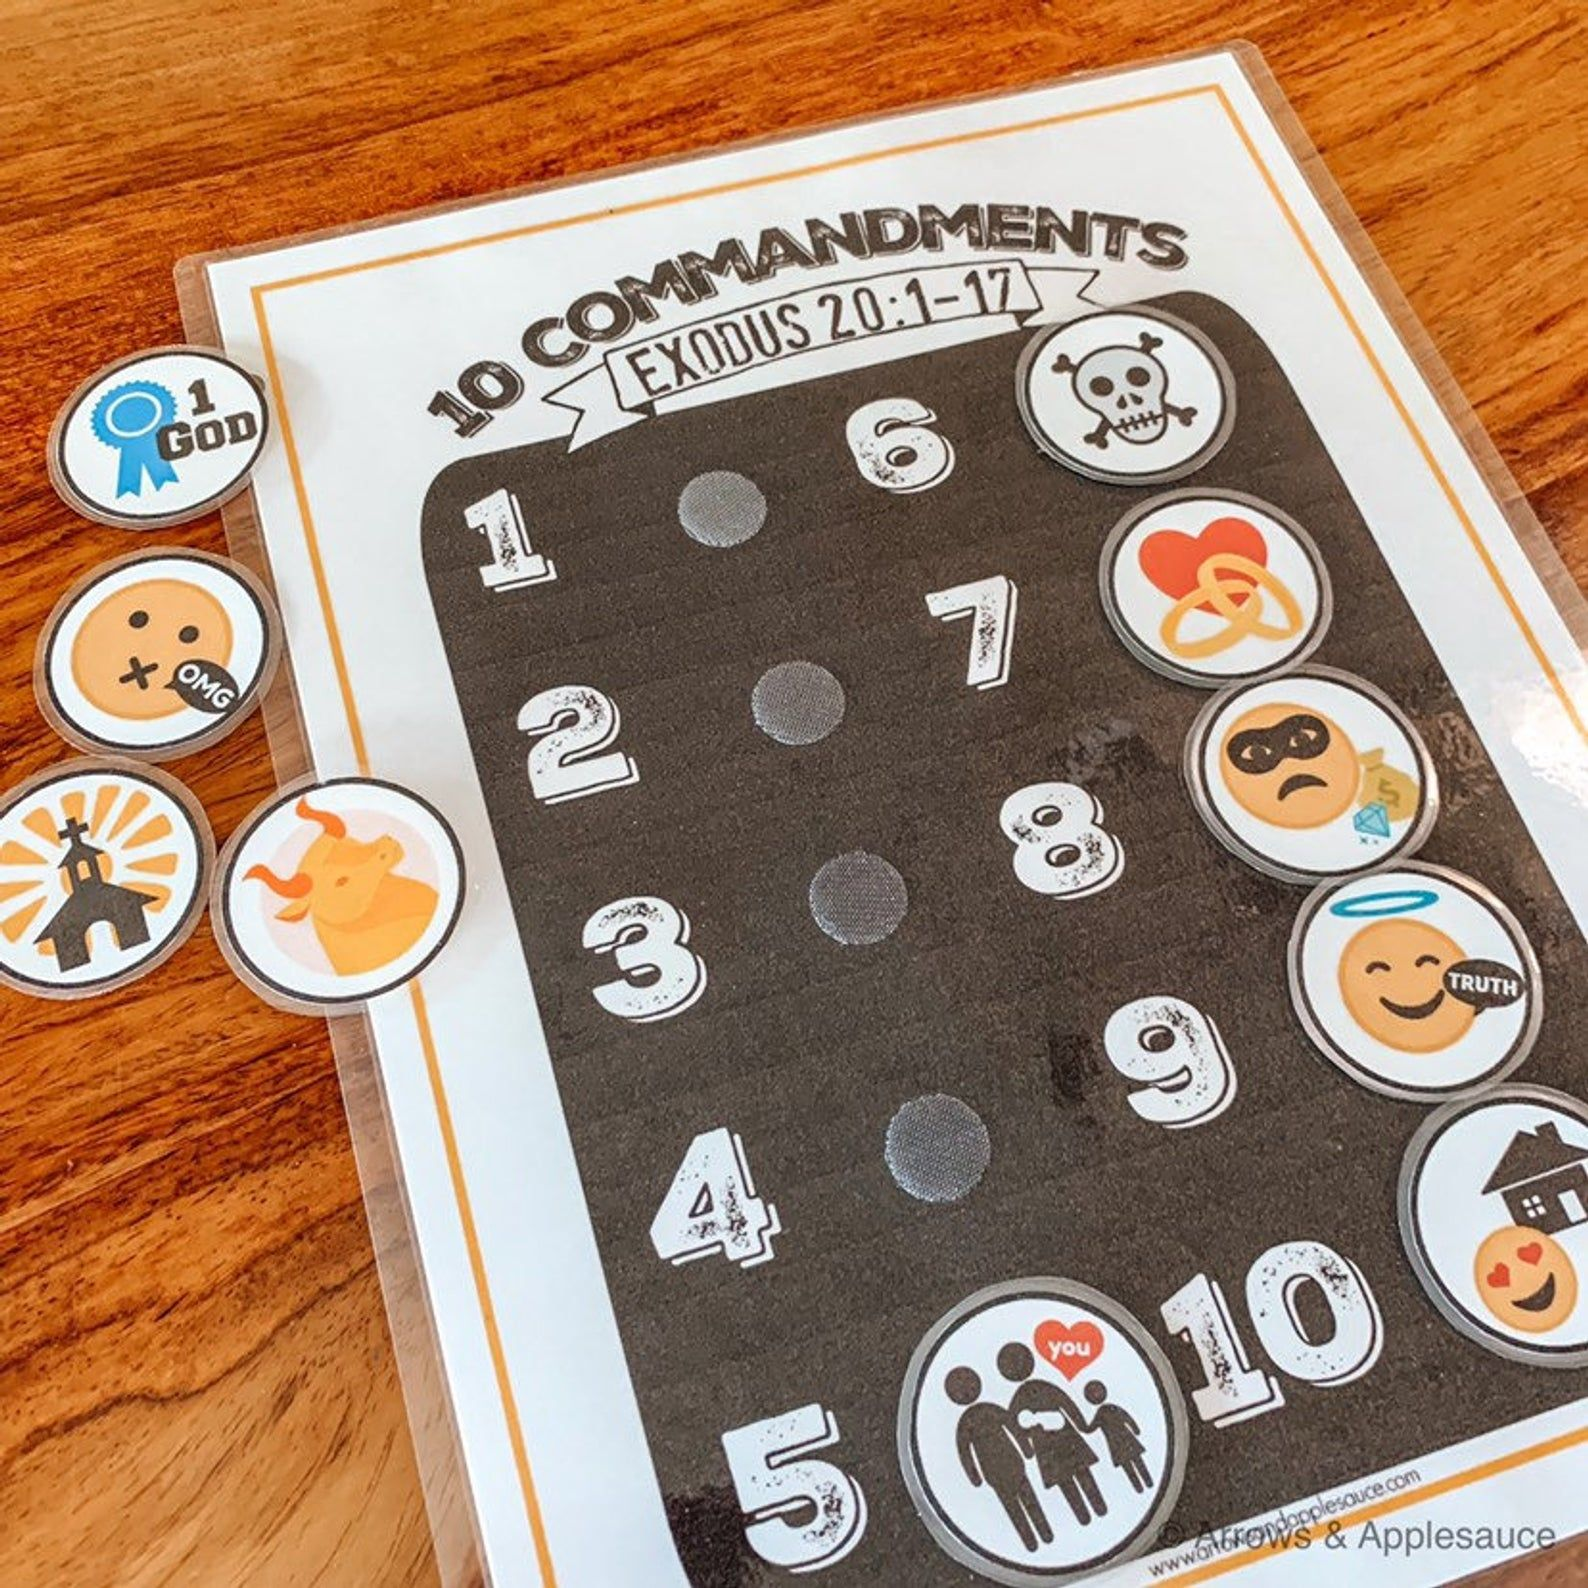 Ten Commandments Printable Memory Game Kids Activity